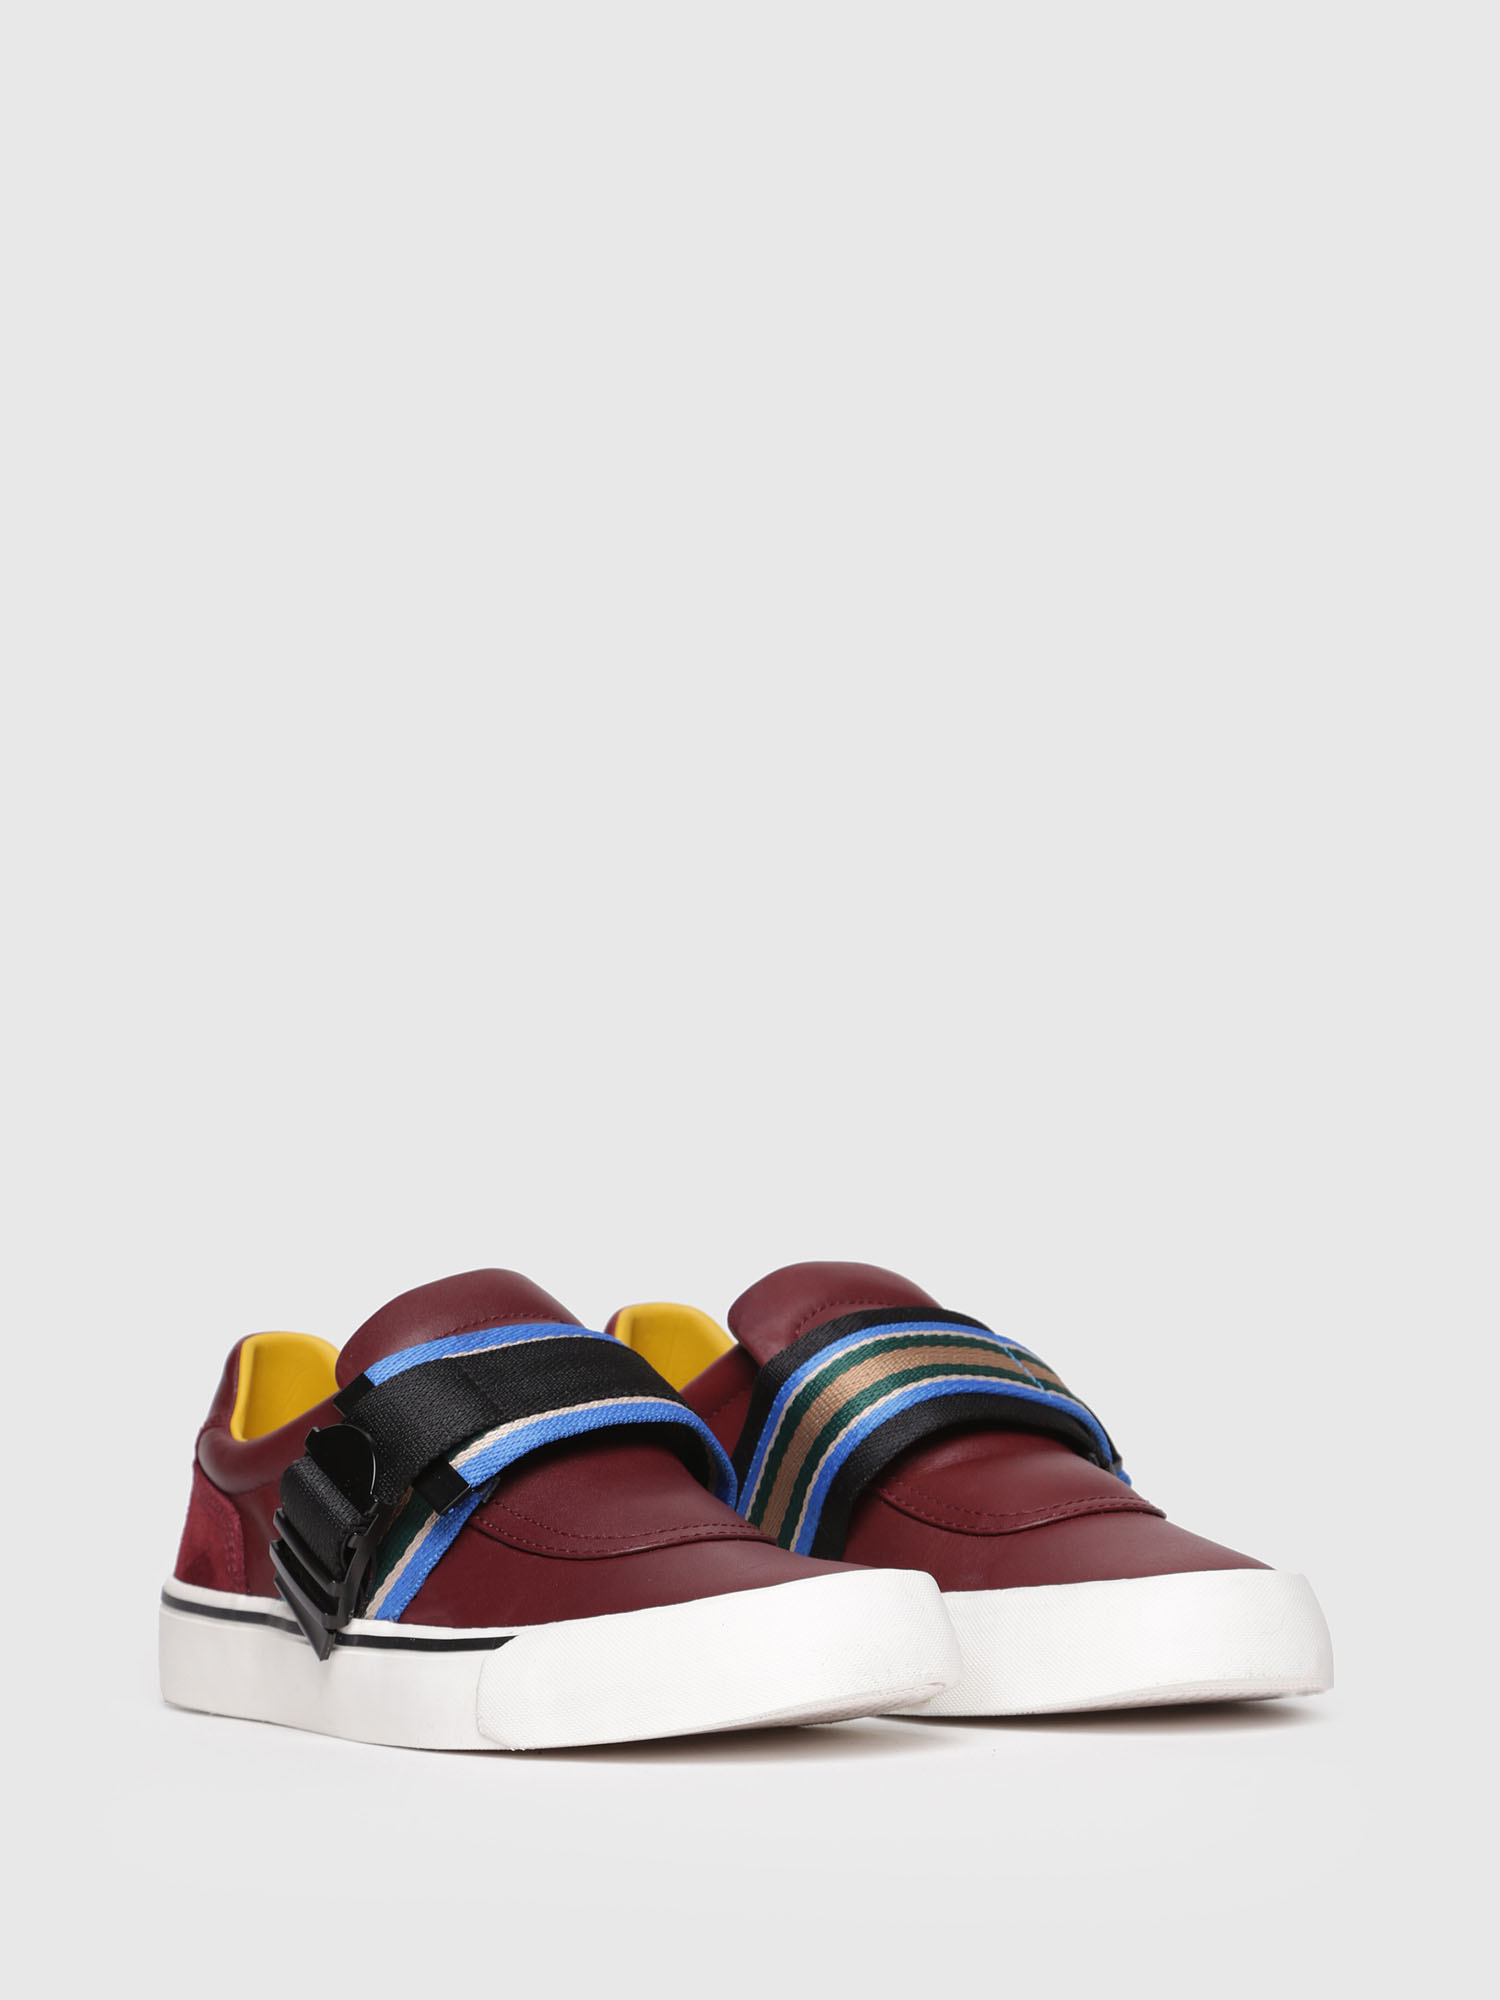 Diesel - S-FLIP LOW BUCKLE W,  - Sneakers - Image 2